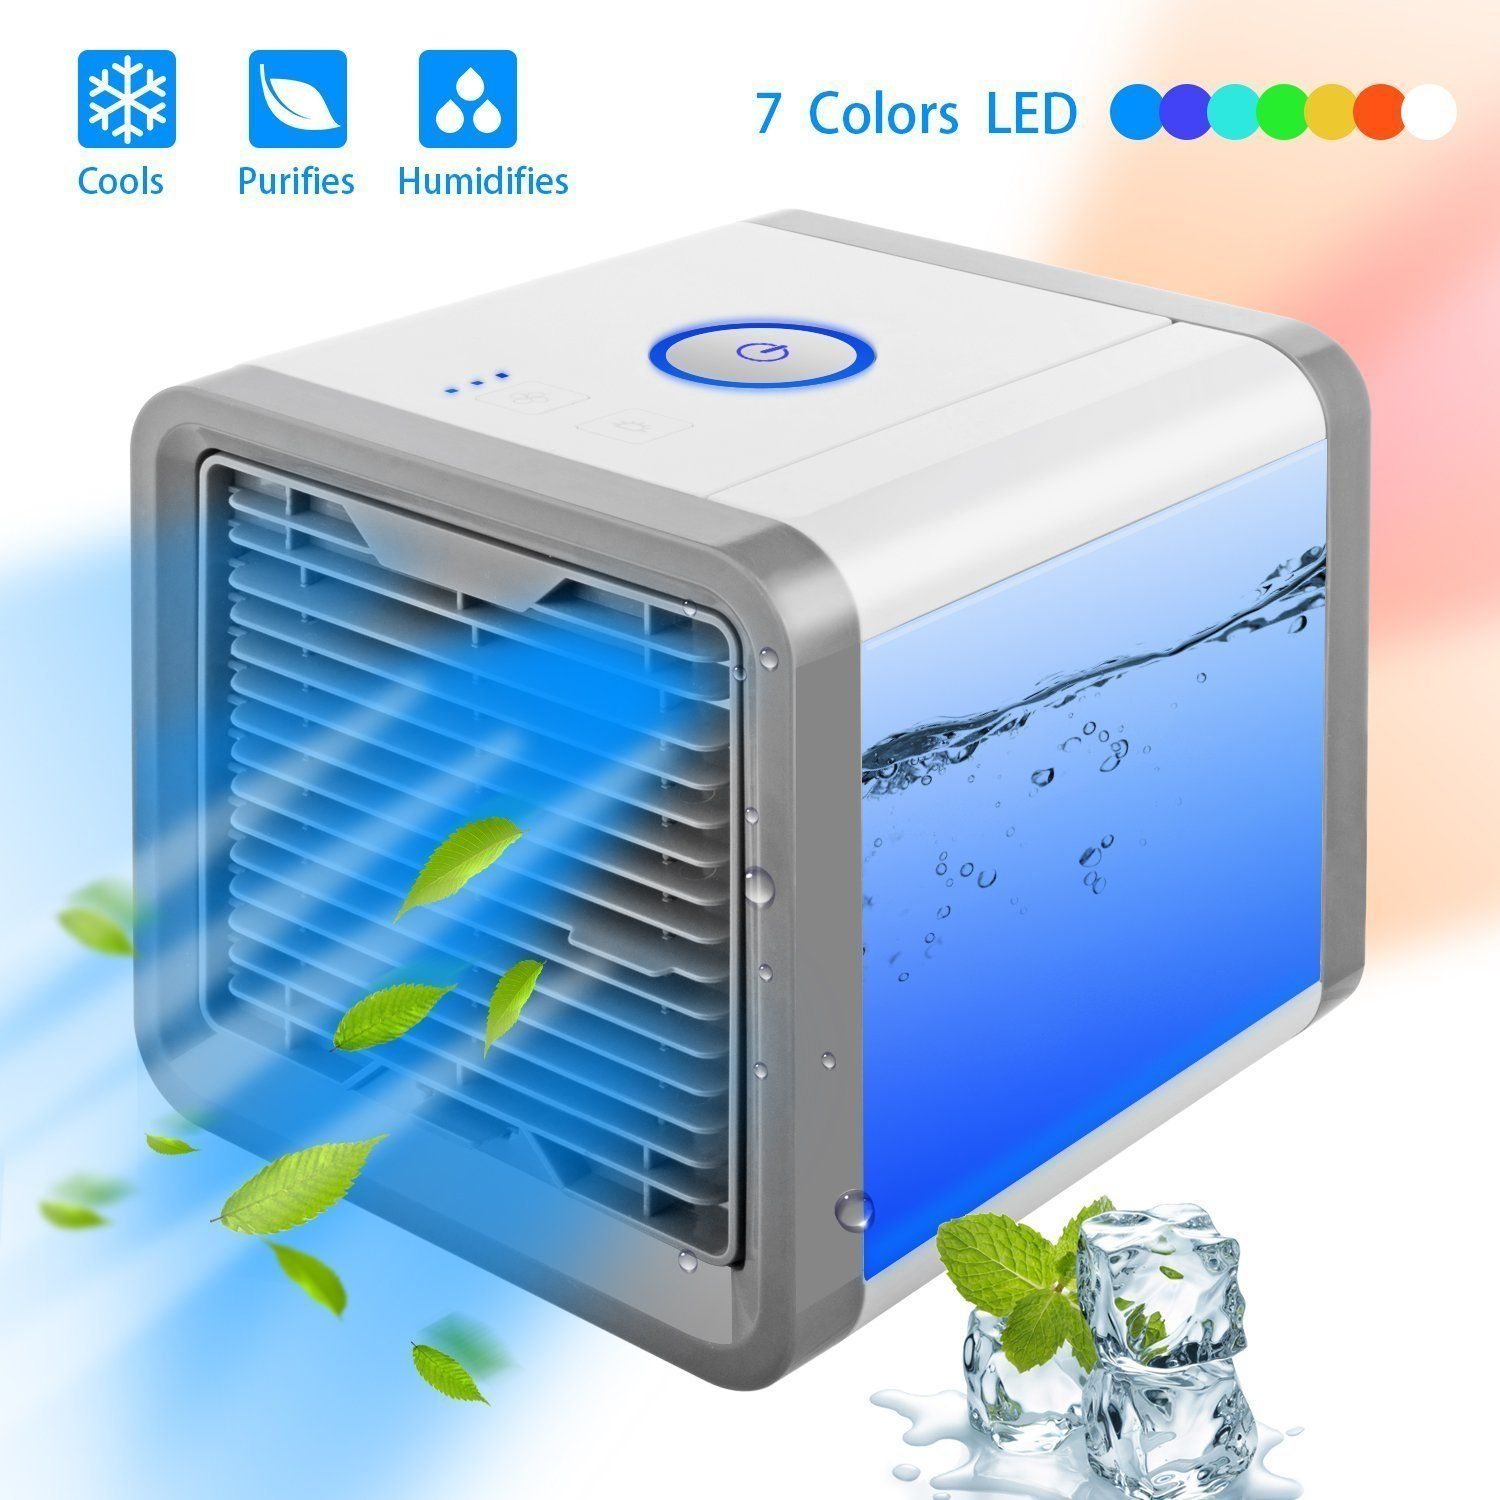 Best Small Portable Air Conditioner Cooler Purifier Arctic Air Ac Portable Air Cooler Air Cooler Air Conditioner